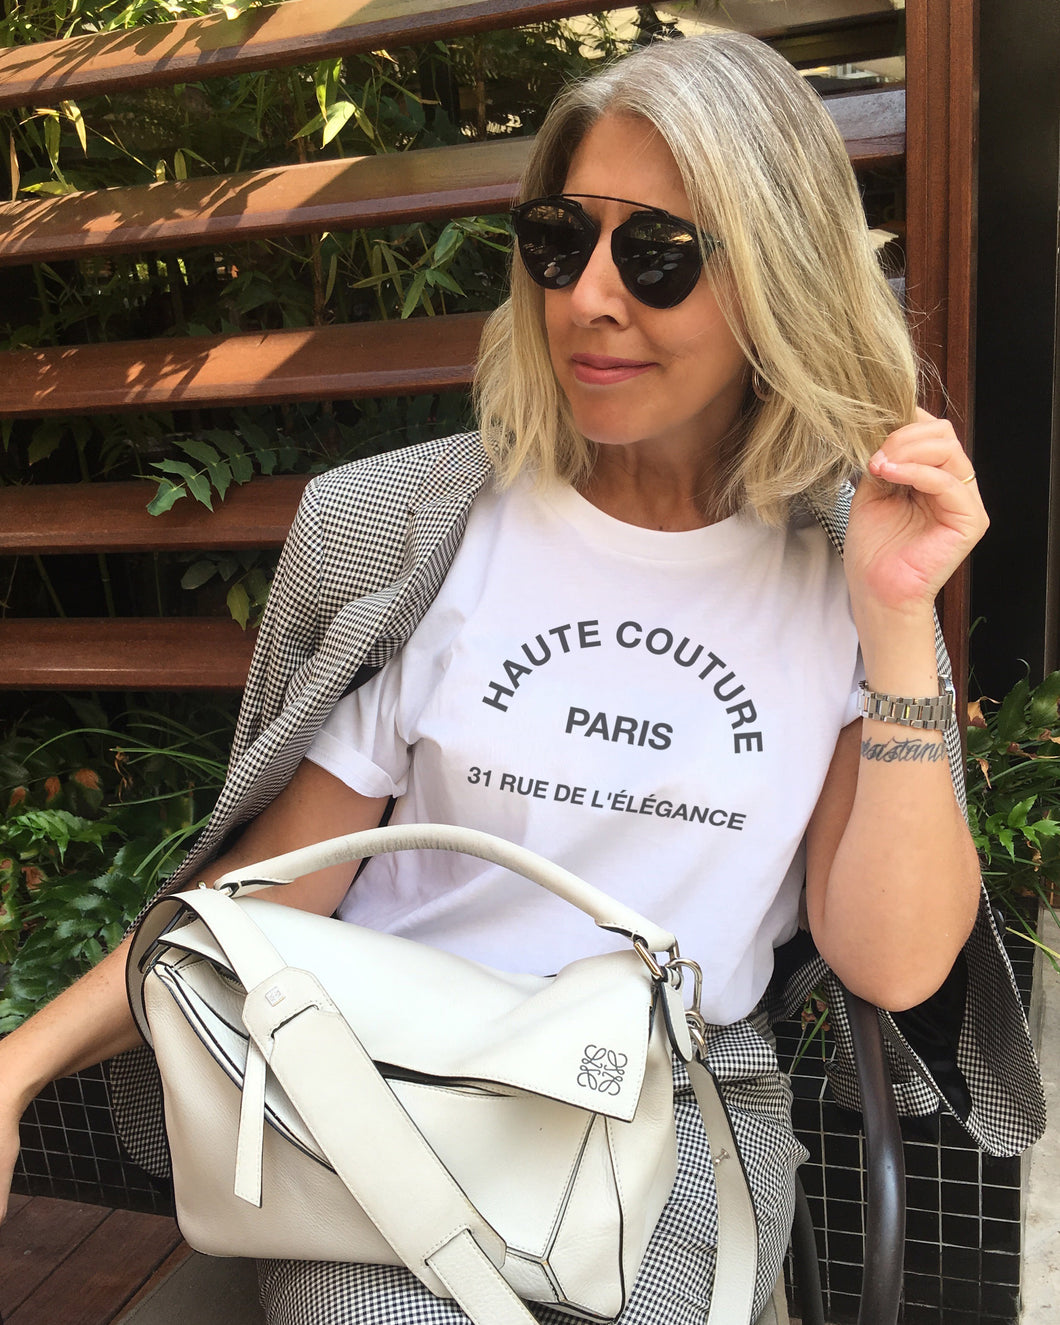 HAUTE COUTURE White T-Shirt